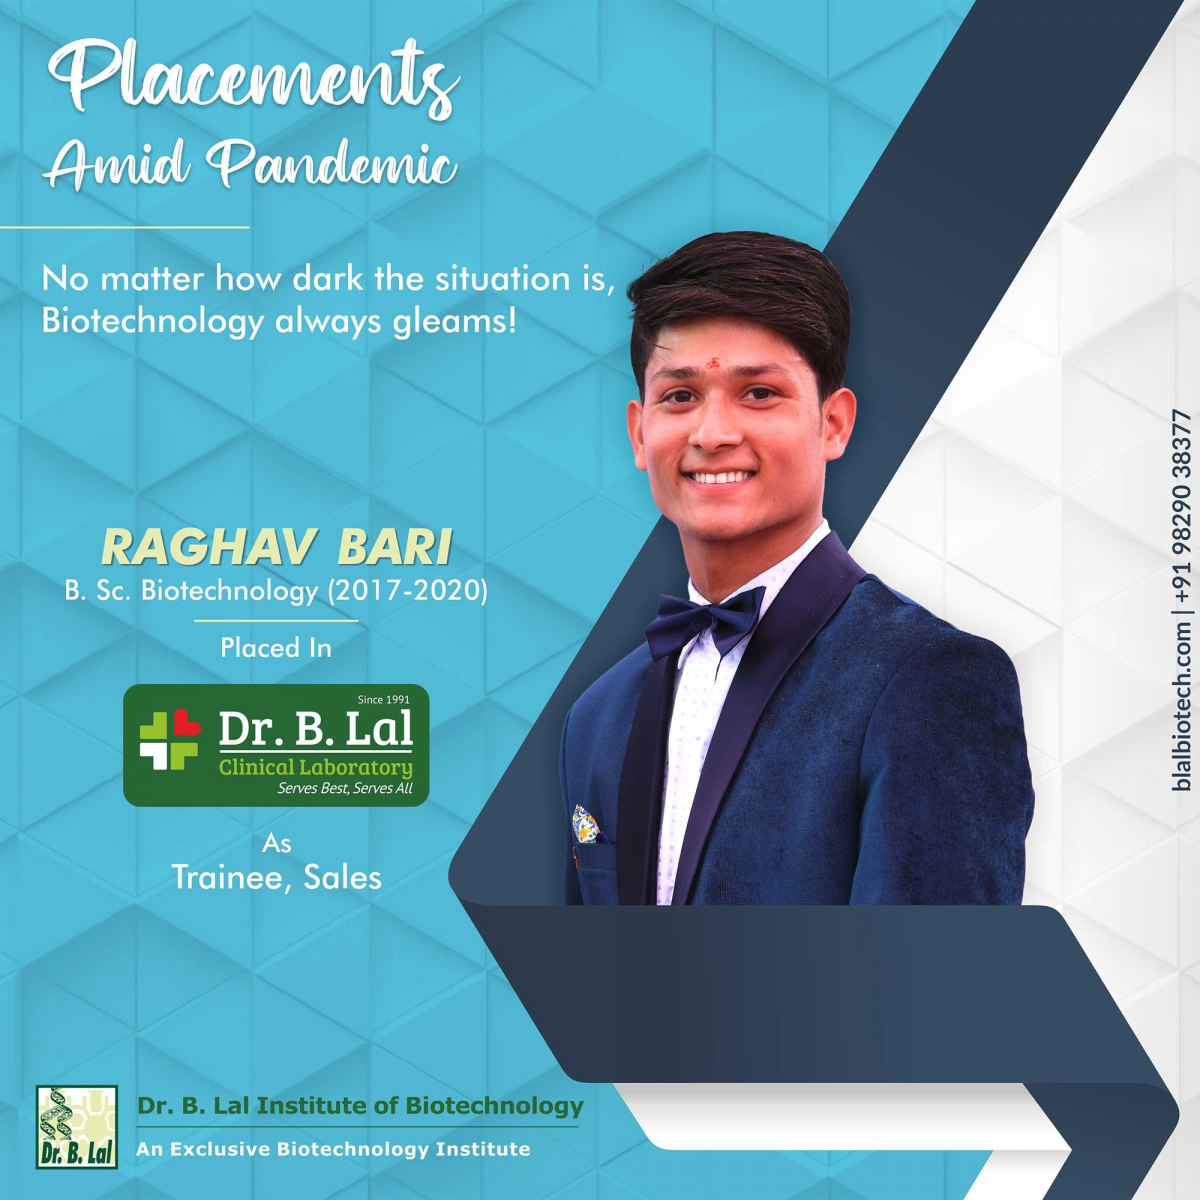 Raghav Bari | Placements Amid Pandemic | Dr. B. Lal Institute of Biotechnology